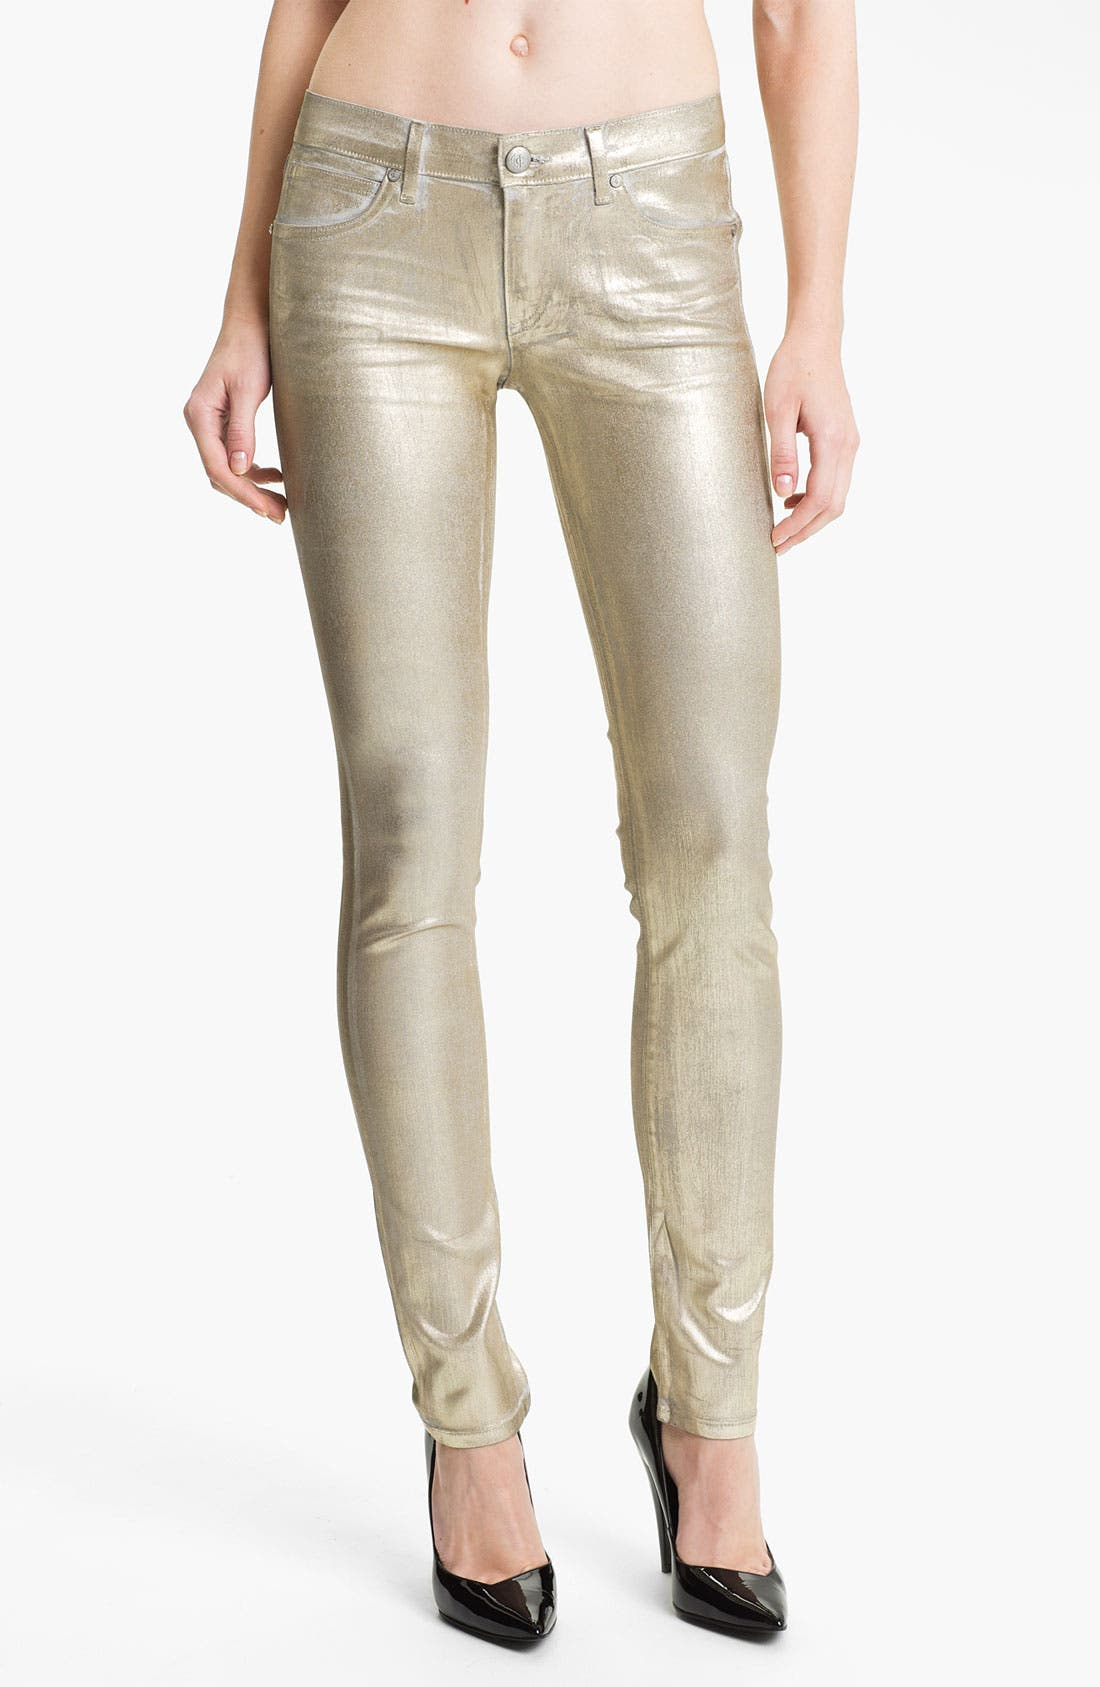 Alternate Image 1 Selected - Juicy Couture Metallic Coated Skinny Jeans (Gold Saturated Foil)